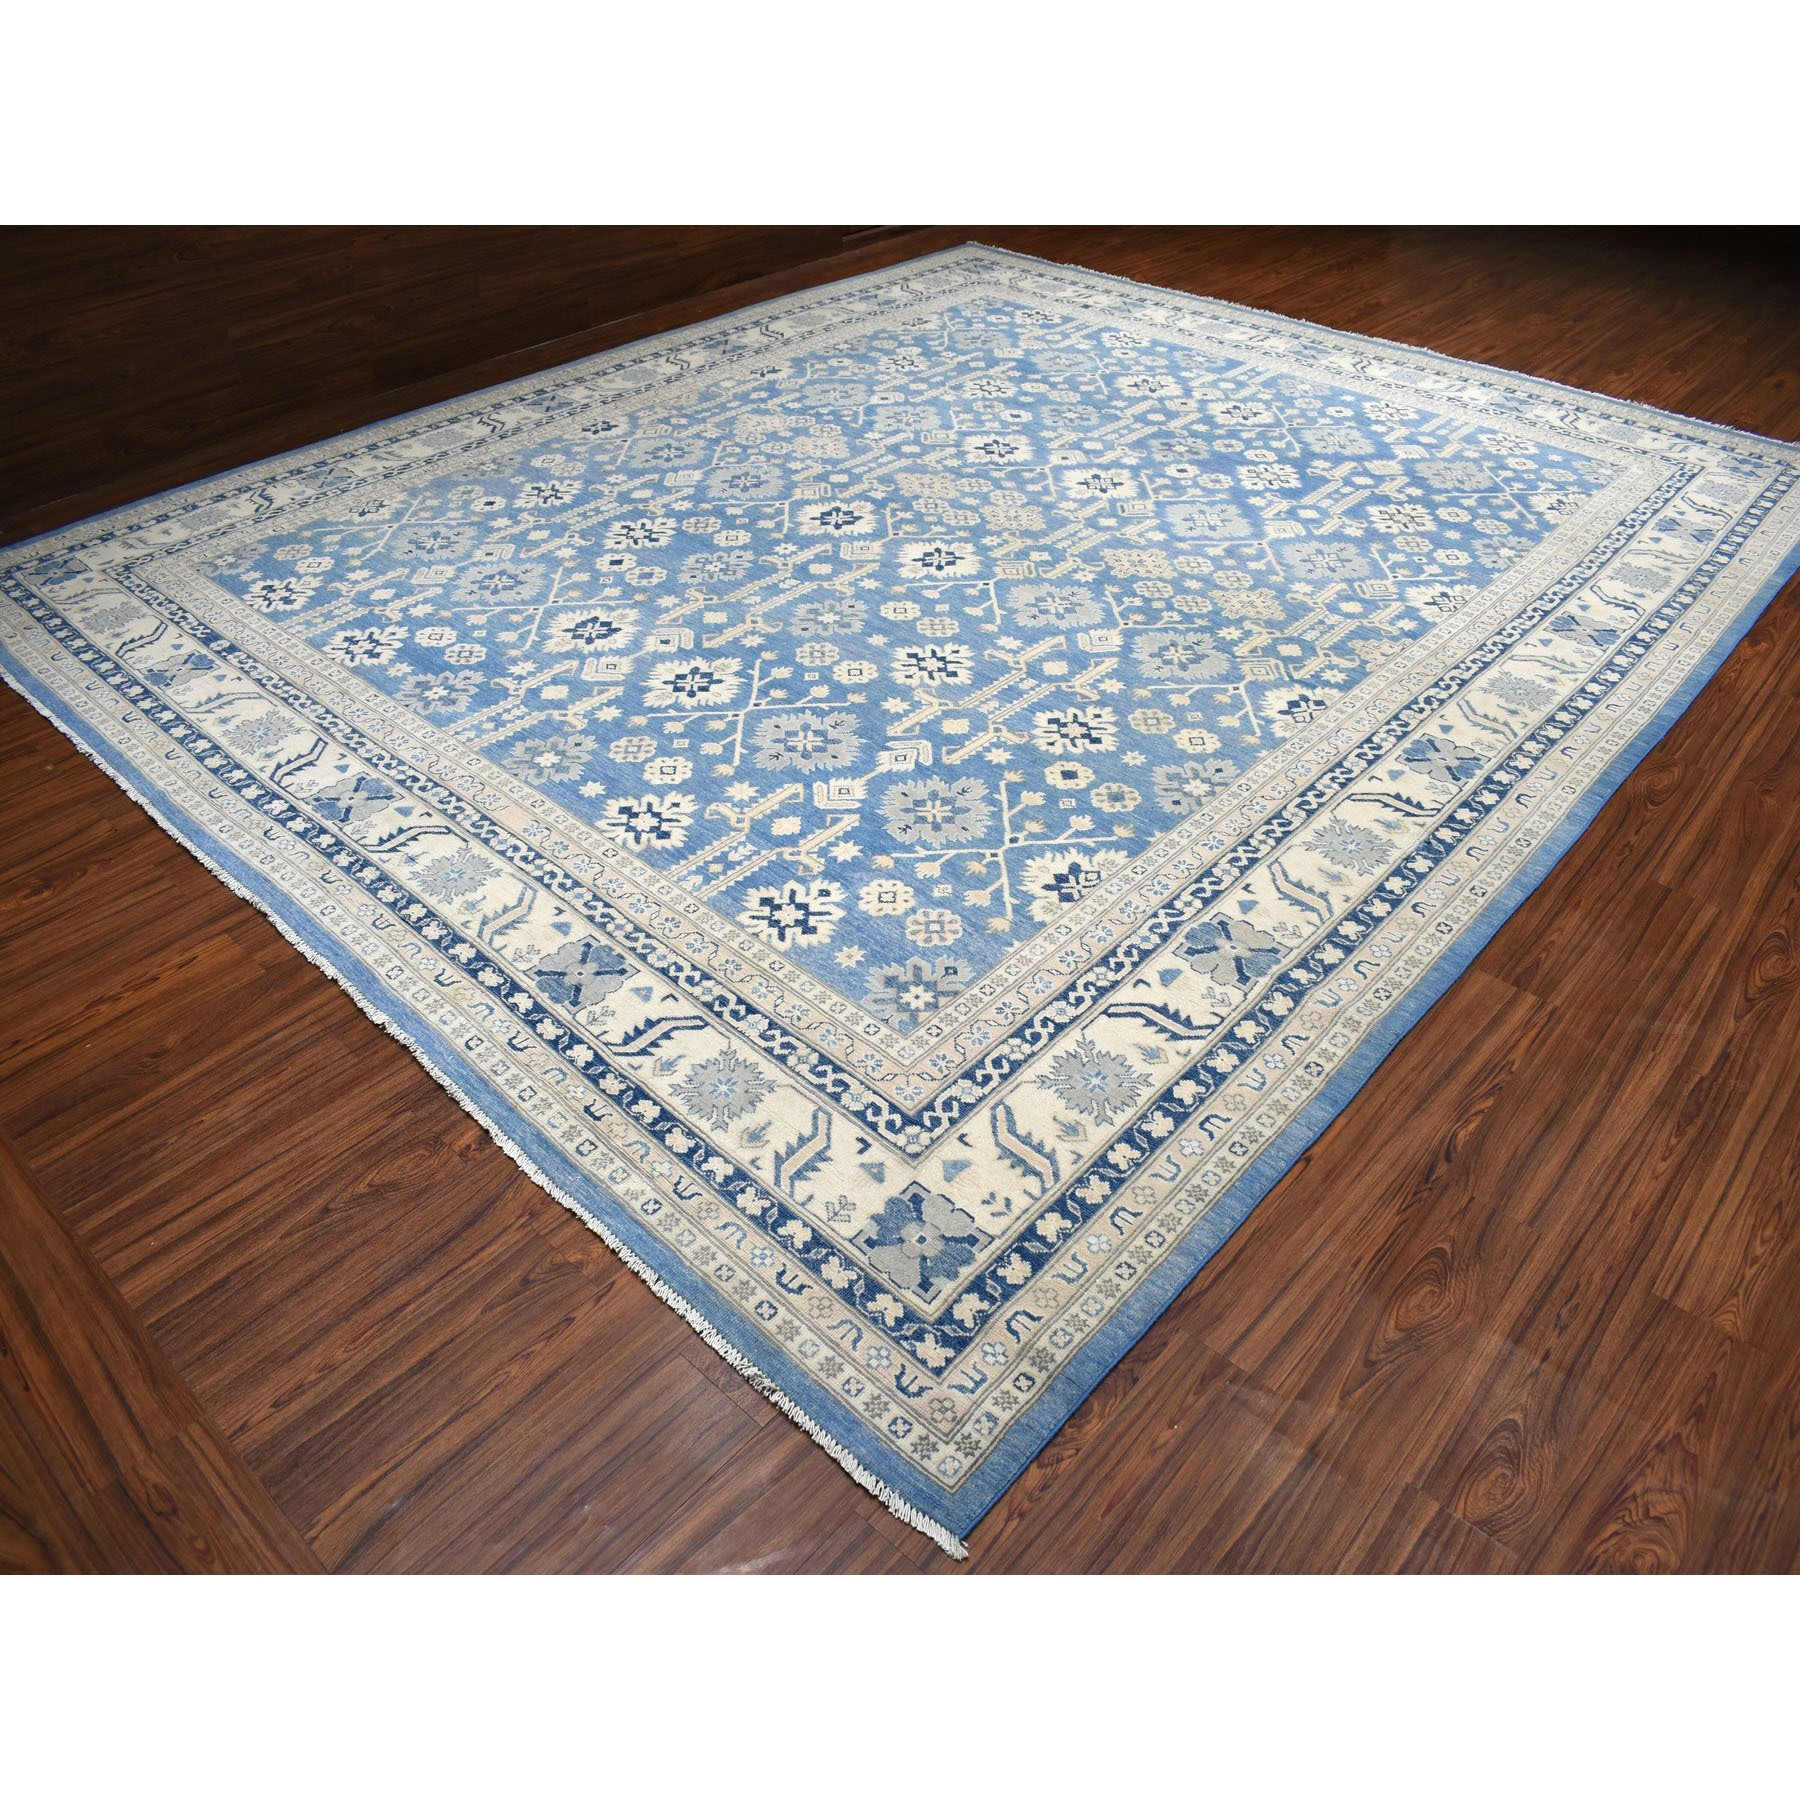 "12'2""x14'3"" Oversized Blue Vintage Look Kazak Geometric Design Pure Wool Hand Knotted Oriental Rug"